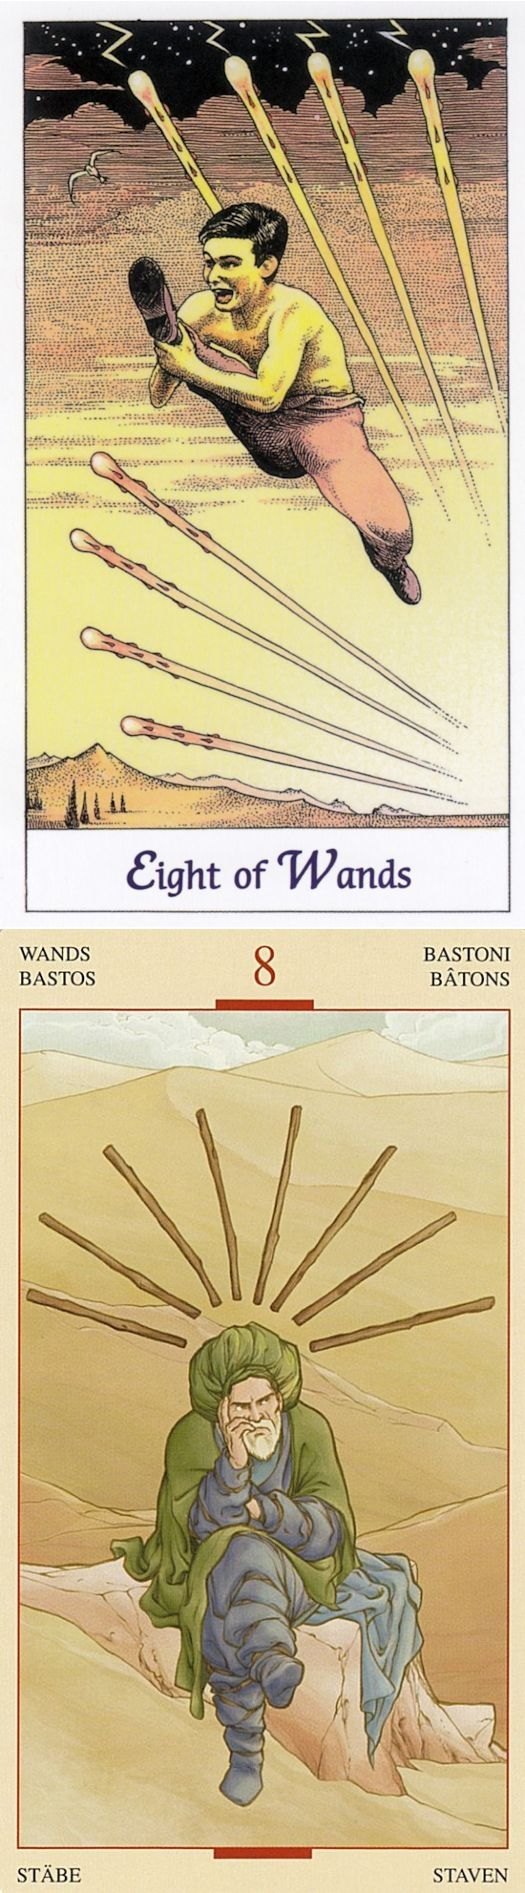 Eight of Wands: motion and waiting (reverse). Cosmic Tarot deck and Holy Grail Tarot deck: tarot gratuit online, tarot bag vs tarot cards explained. Best 2018 ritual sacrifice and tarot card tattoo. #tarot #happyhalloween #temperance #selfempowerment #spell